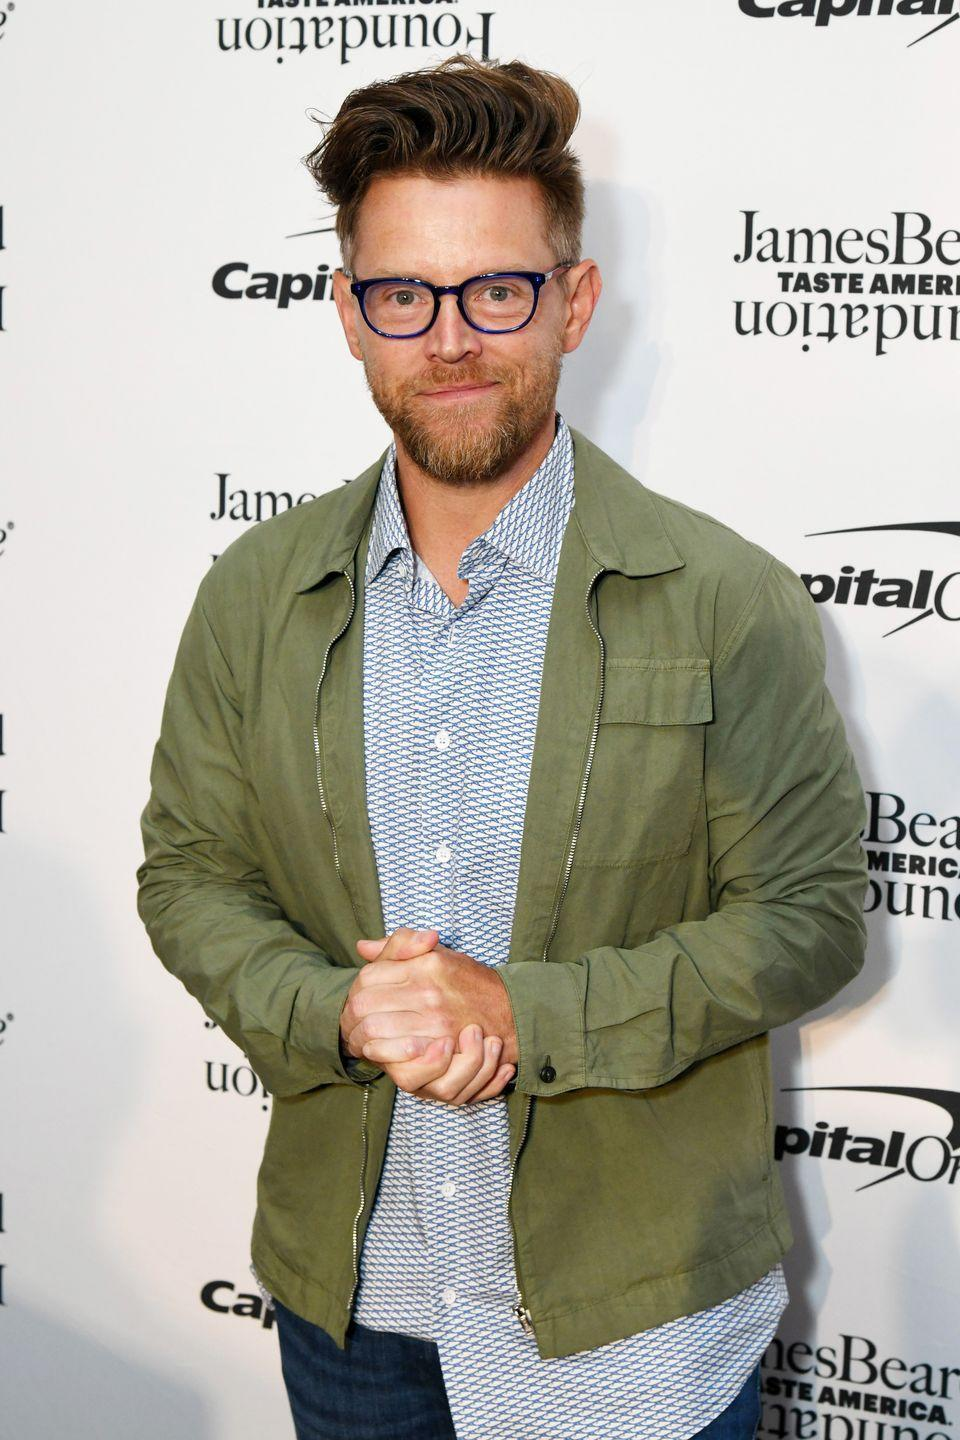 """<p>Since his redemption tour, Richard has become a well-known celebrity chef. He's returned as a judge for <em>Top Chef </em>and appeared on programs like <em>Today</em> and <em>Good Morning America. </em>He's also the author of <em><a href=""""https://www.amazon.com/Try-This-Home-Recipes-Plate/dp/030798527X"""" rel=""""nofollow noopener"""" target=""""_blank"""" data-ylk=""""slk:Try This at Home: Recipes from My Head to Your Plate"""" class=""""link rapid-noclick-resp"""">Try This at Home: Recipes from My Head to Your Plate</a></em> and has restaurants in Atlanta and San Diego.</p>"""